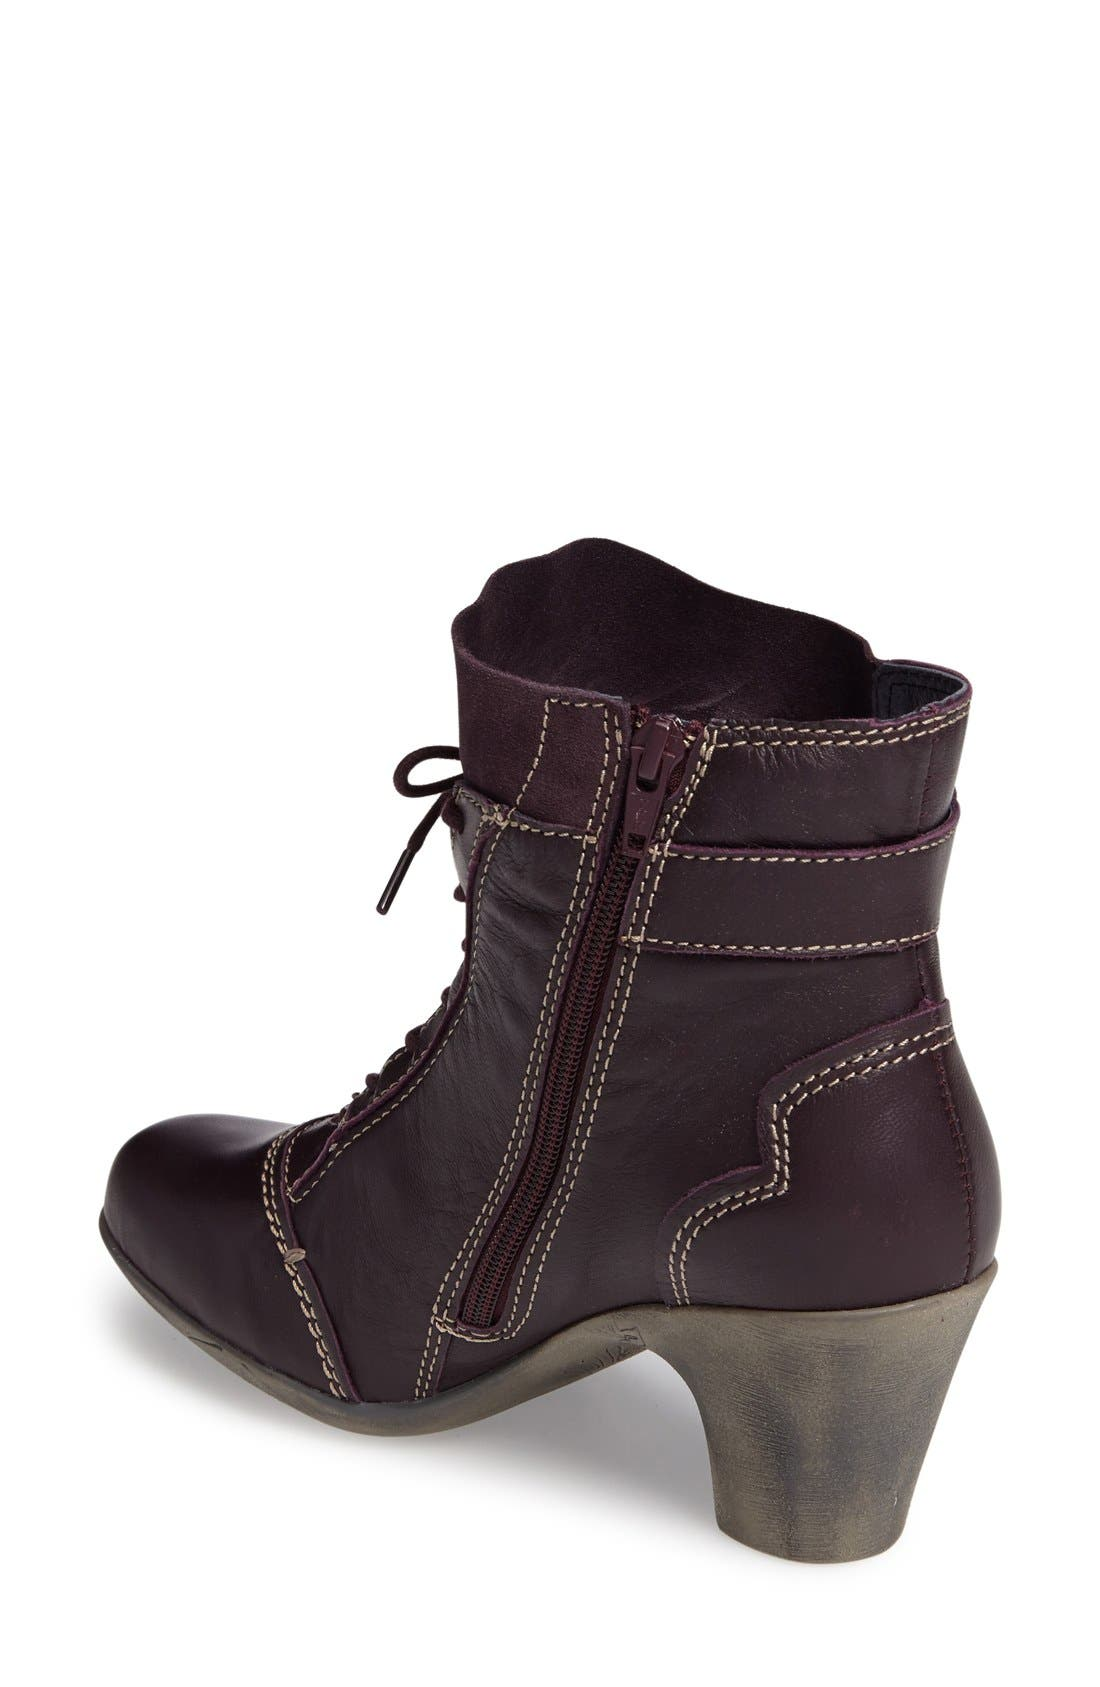 'Jesse' Lace-Up Bootie,                             Alternate thumbnail 2, color,                             Aubergine Leather